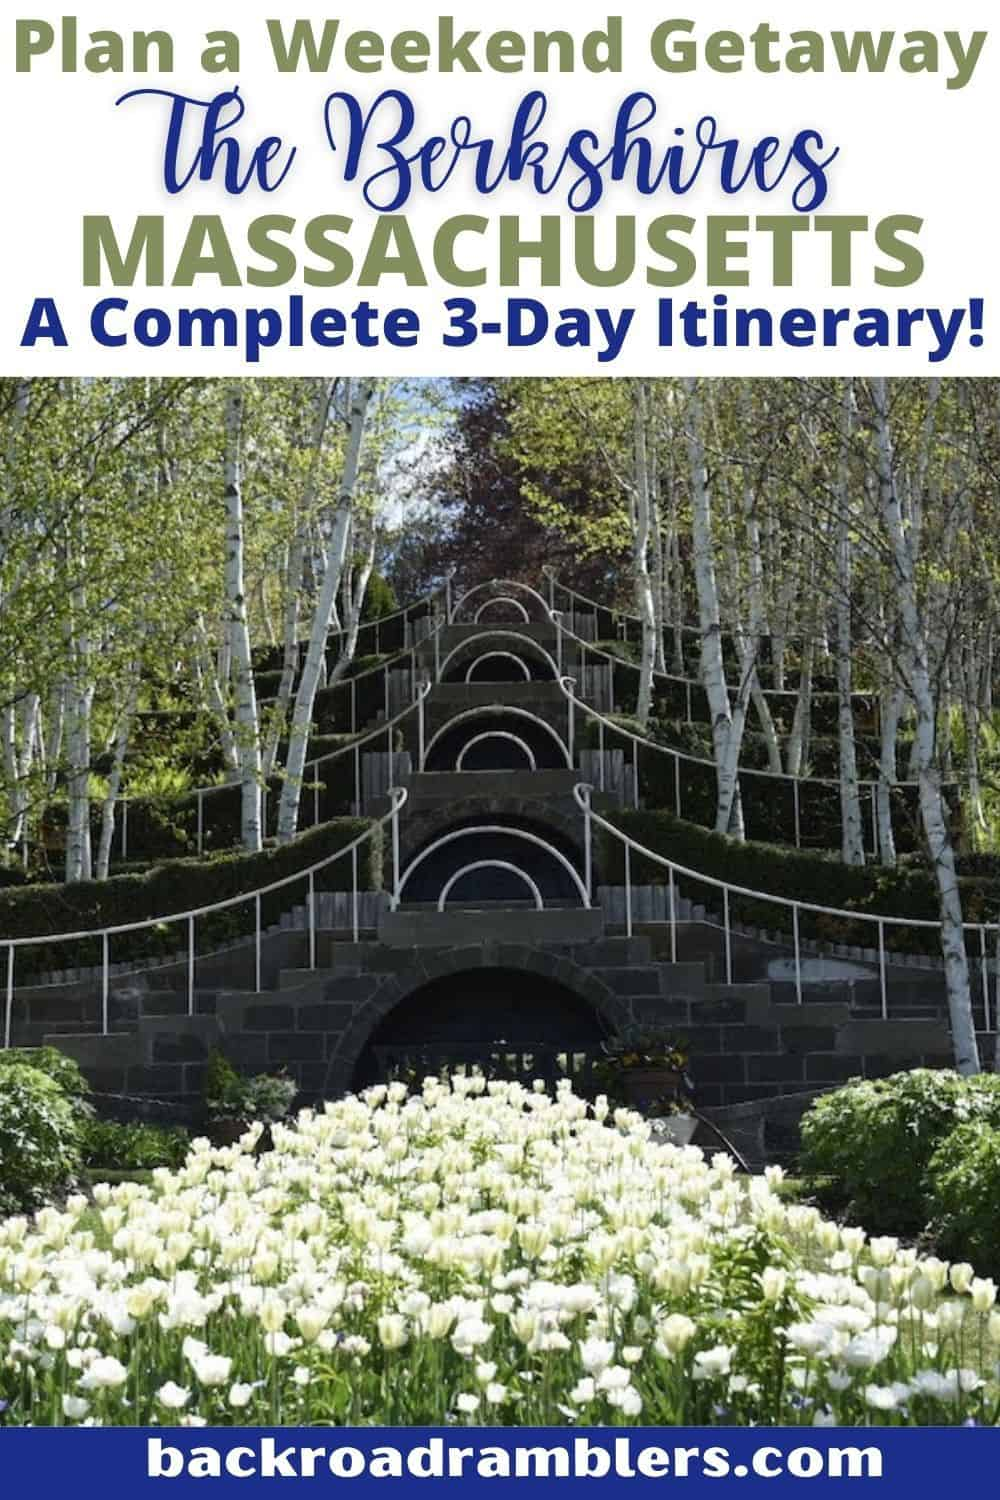 A view of the gardens at Naumkeag in Stockbridge, MA. Text overlay: Plan a Weekend Getaway to the Berkshires of Massachusetts - A Complete 3-Day Itinerary.